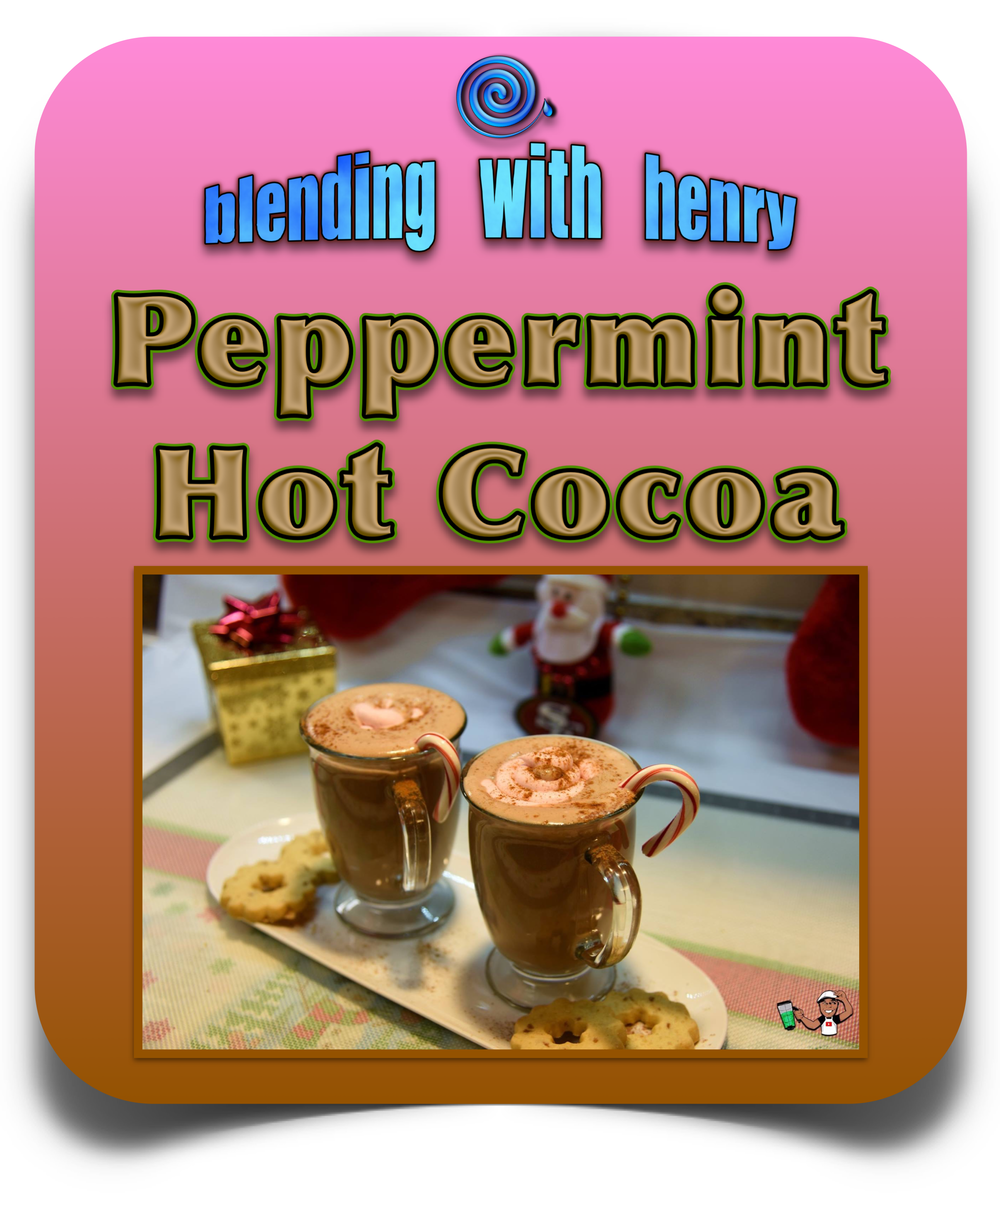 peppermint hot cocoa website.png